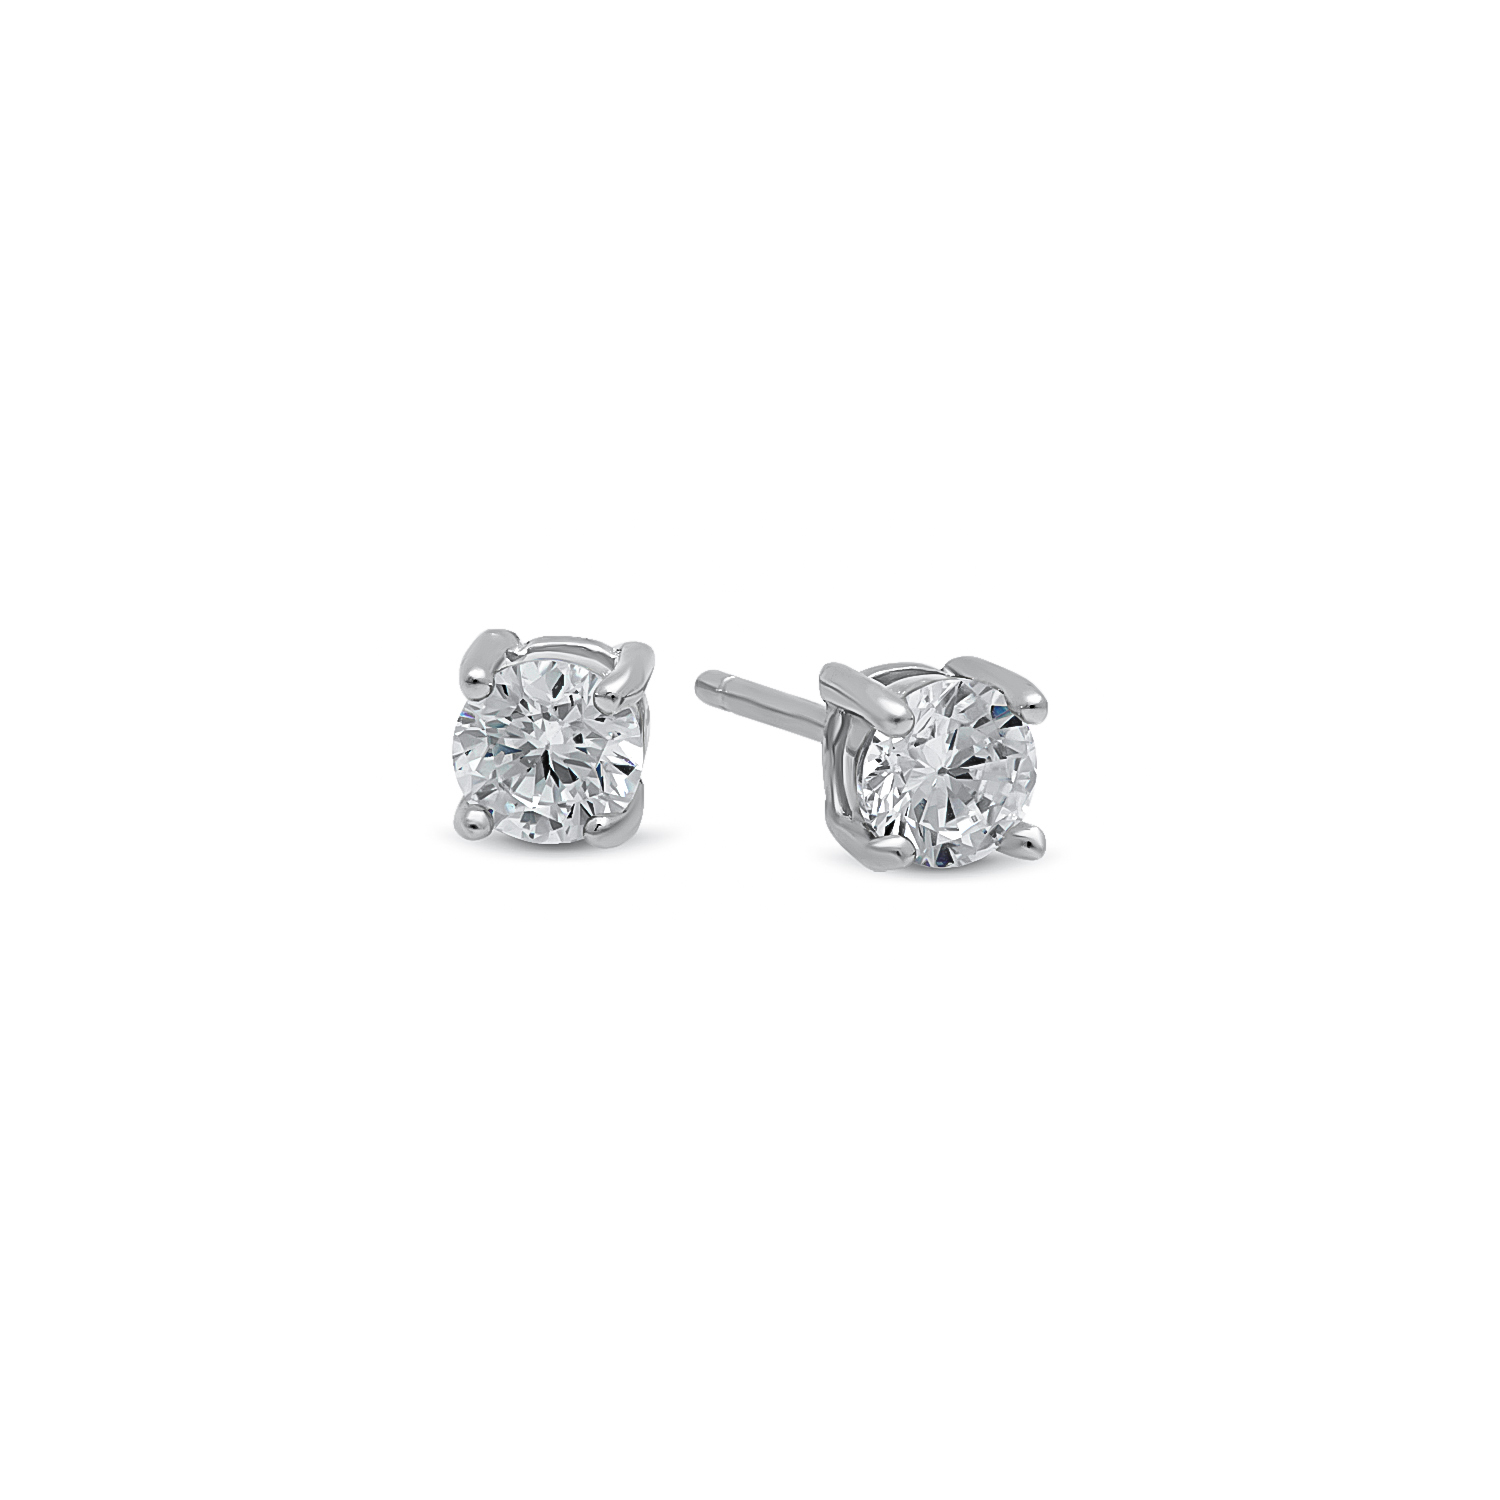 925 Sterling Silver Round Clear Diamond Cut CZ Basket Set Stud Earrings, Rhodium Finish - Made in Italy